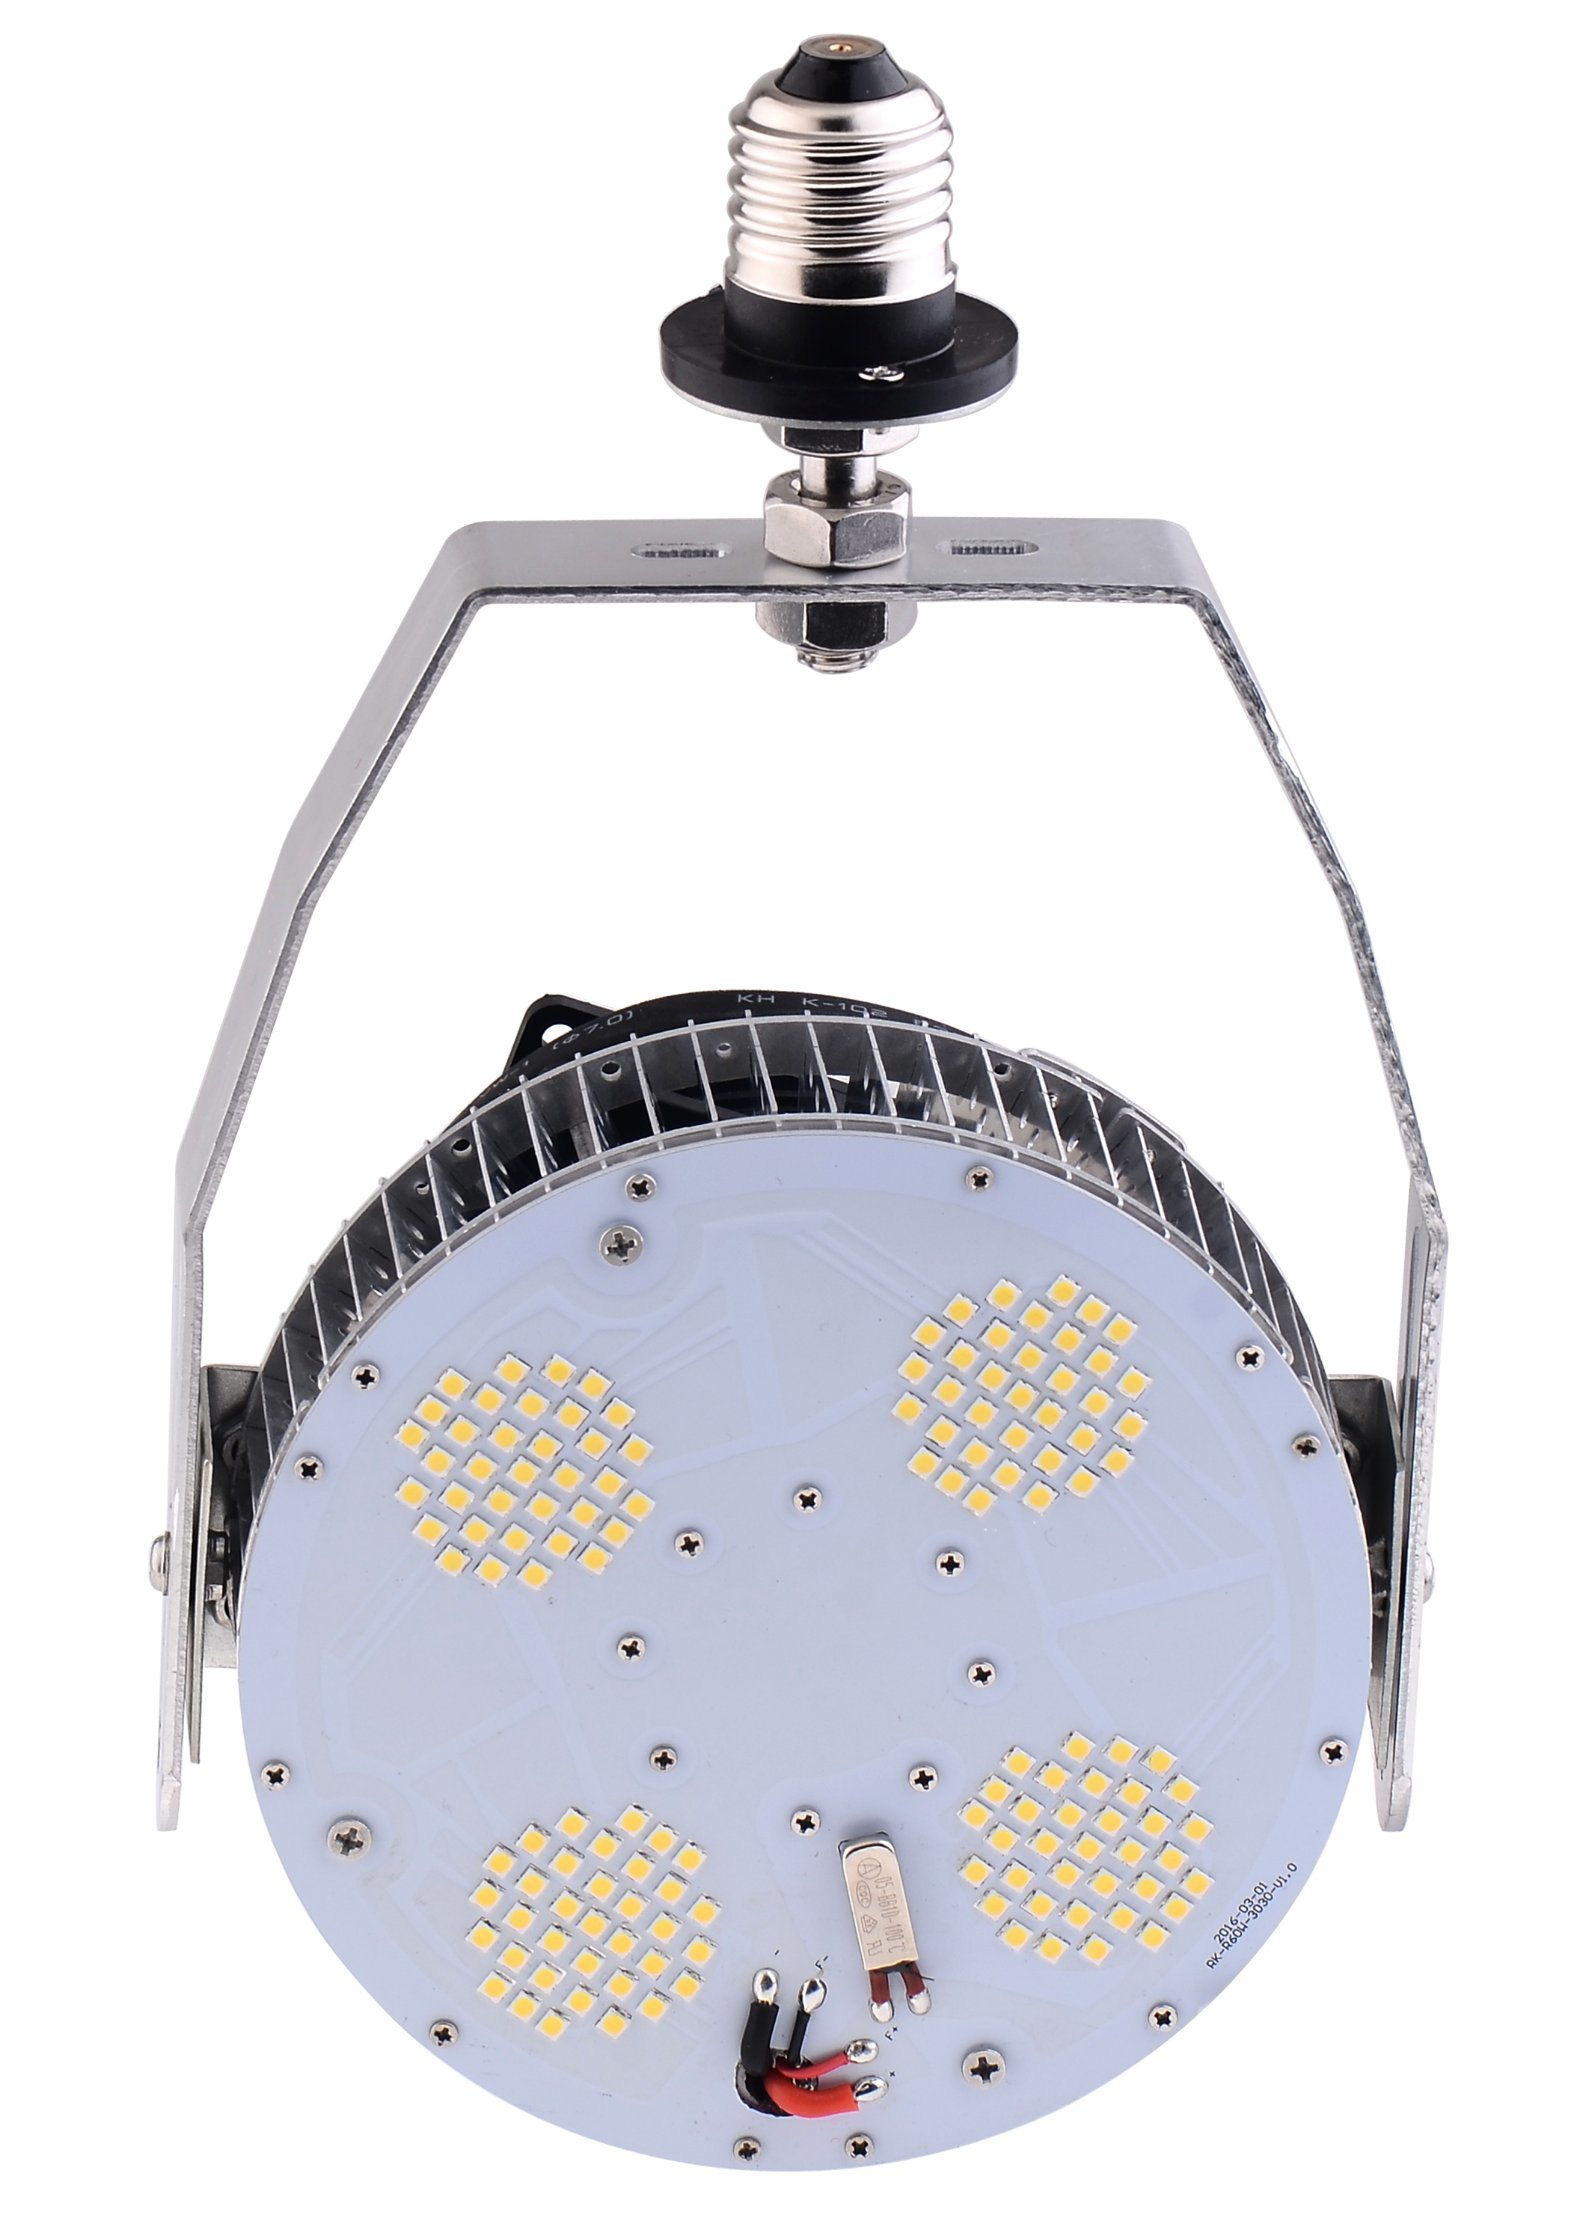 Cool White E40 120 Watt LED LED Retrofit Kits with ETL Dlc Listed